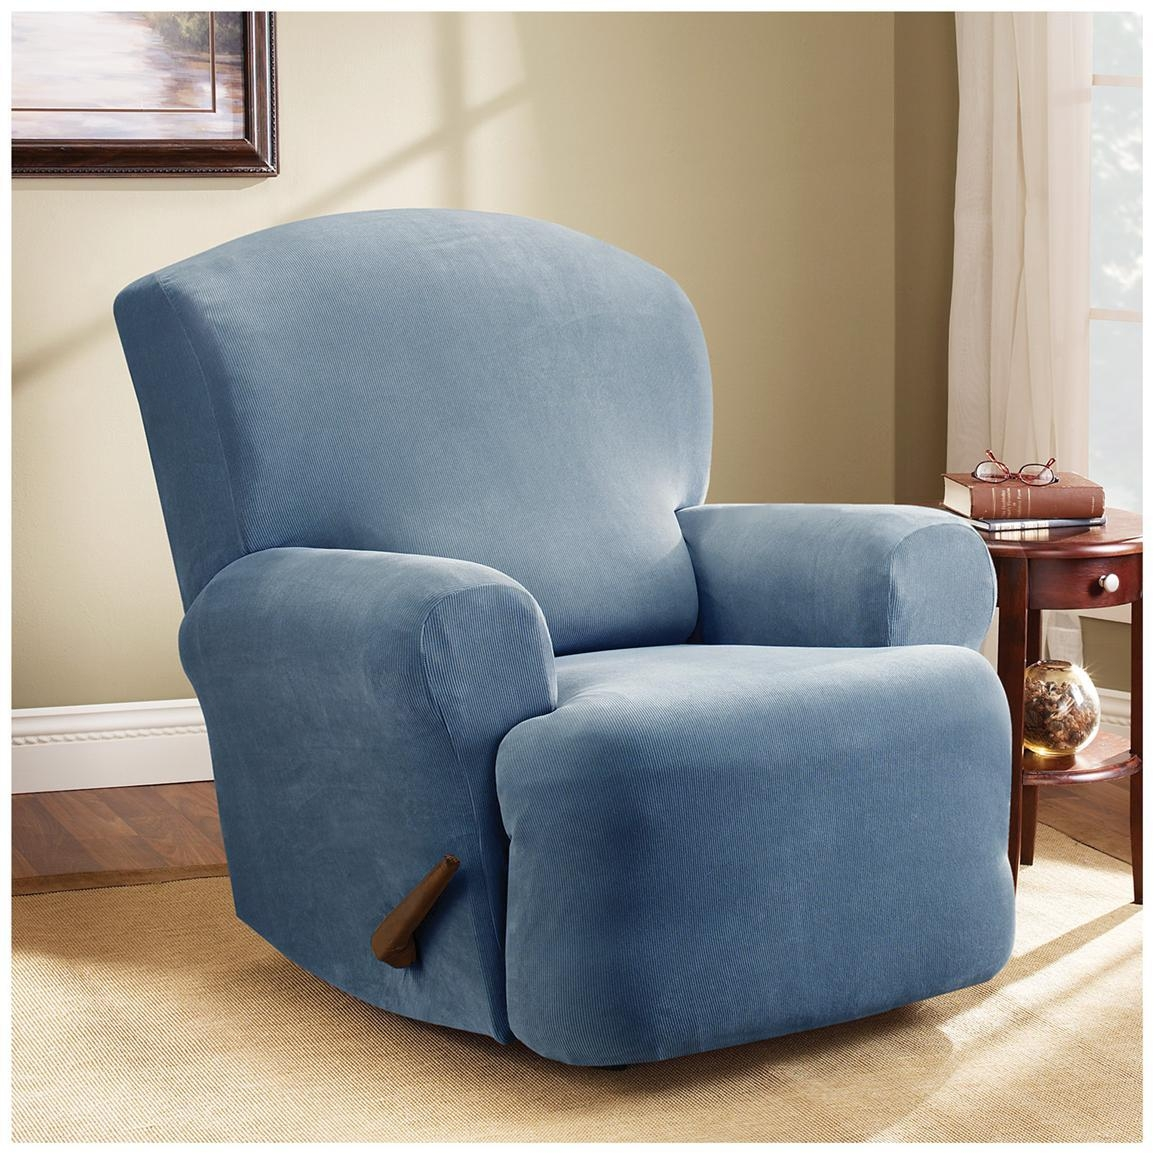 Sure Fit® Stretch Pearson Recliner Slipcover – 292825, Furniture Pertaining To Stretch Covers For Recliners (View 6 of 20)